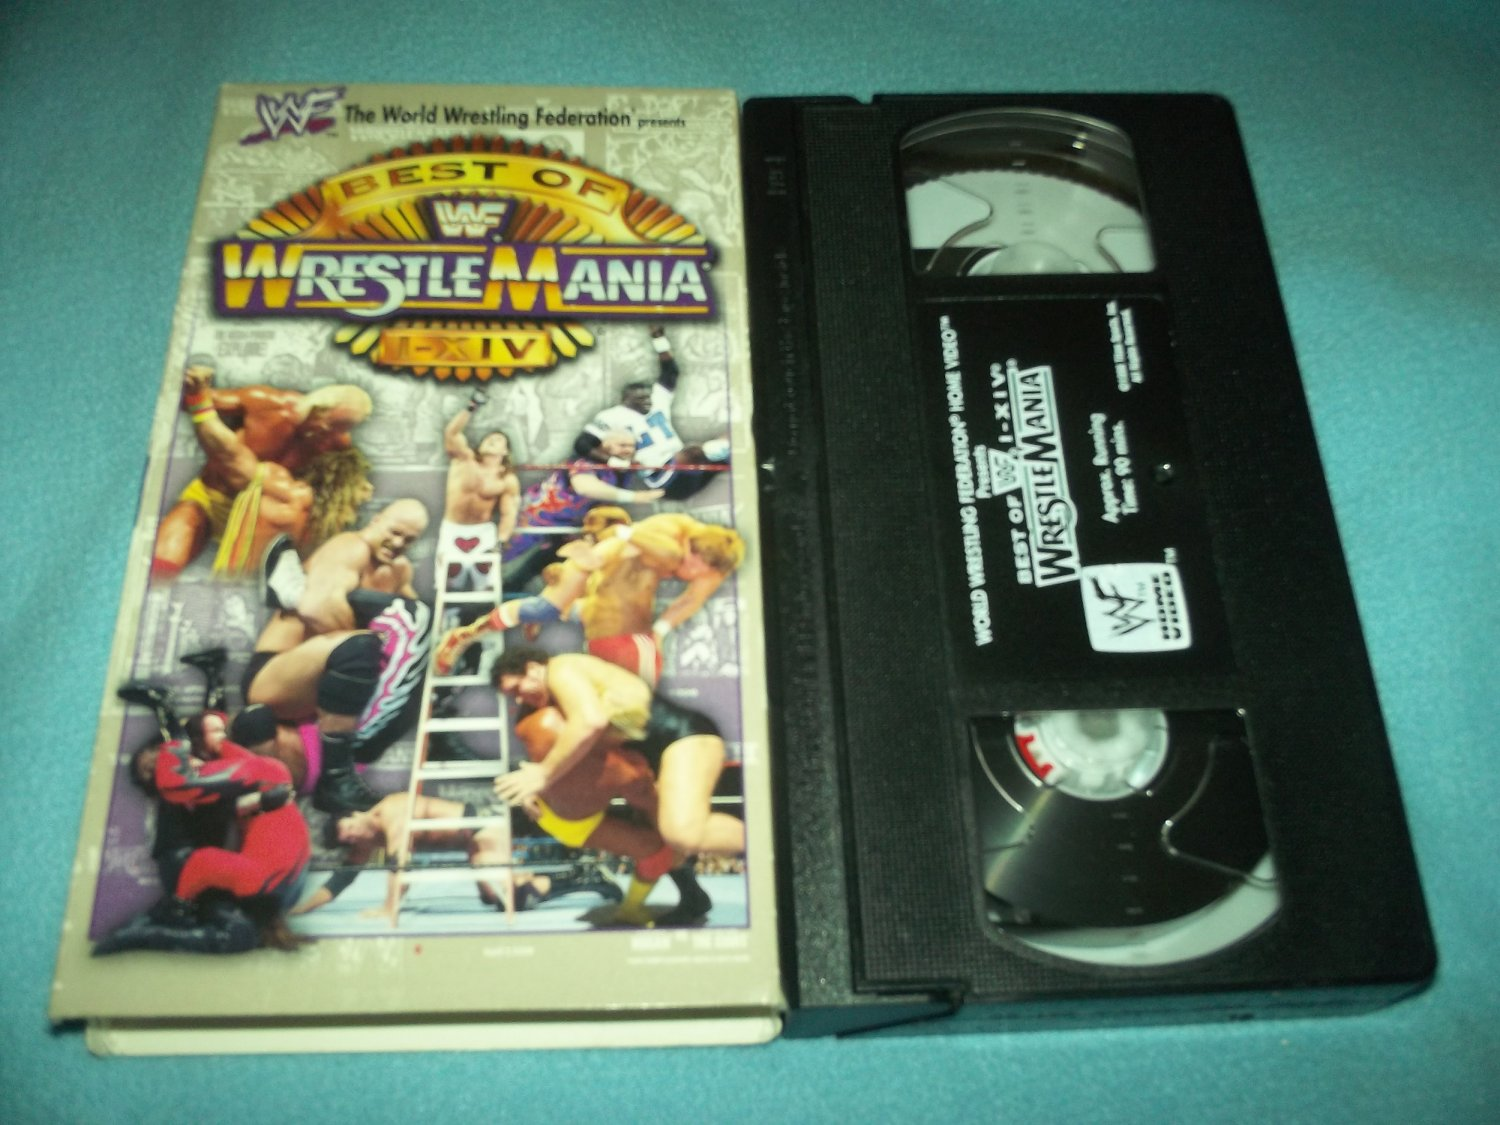 WWF BEST OF WRESTLEMANIA 1-XIV~VHS~1998~HULK HOGAN, RIC FLAIR, STEVE AUSTIN